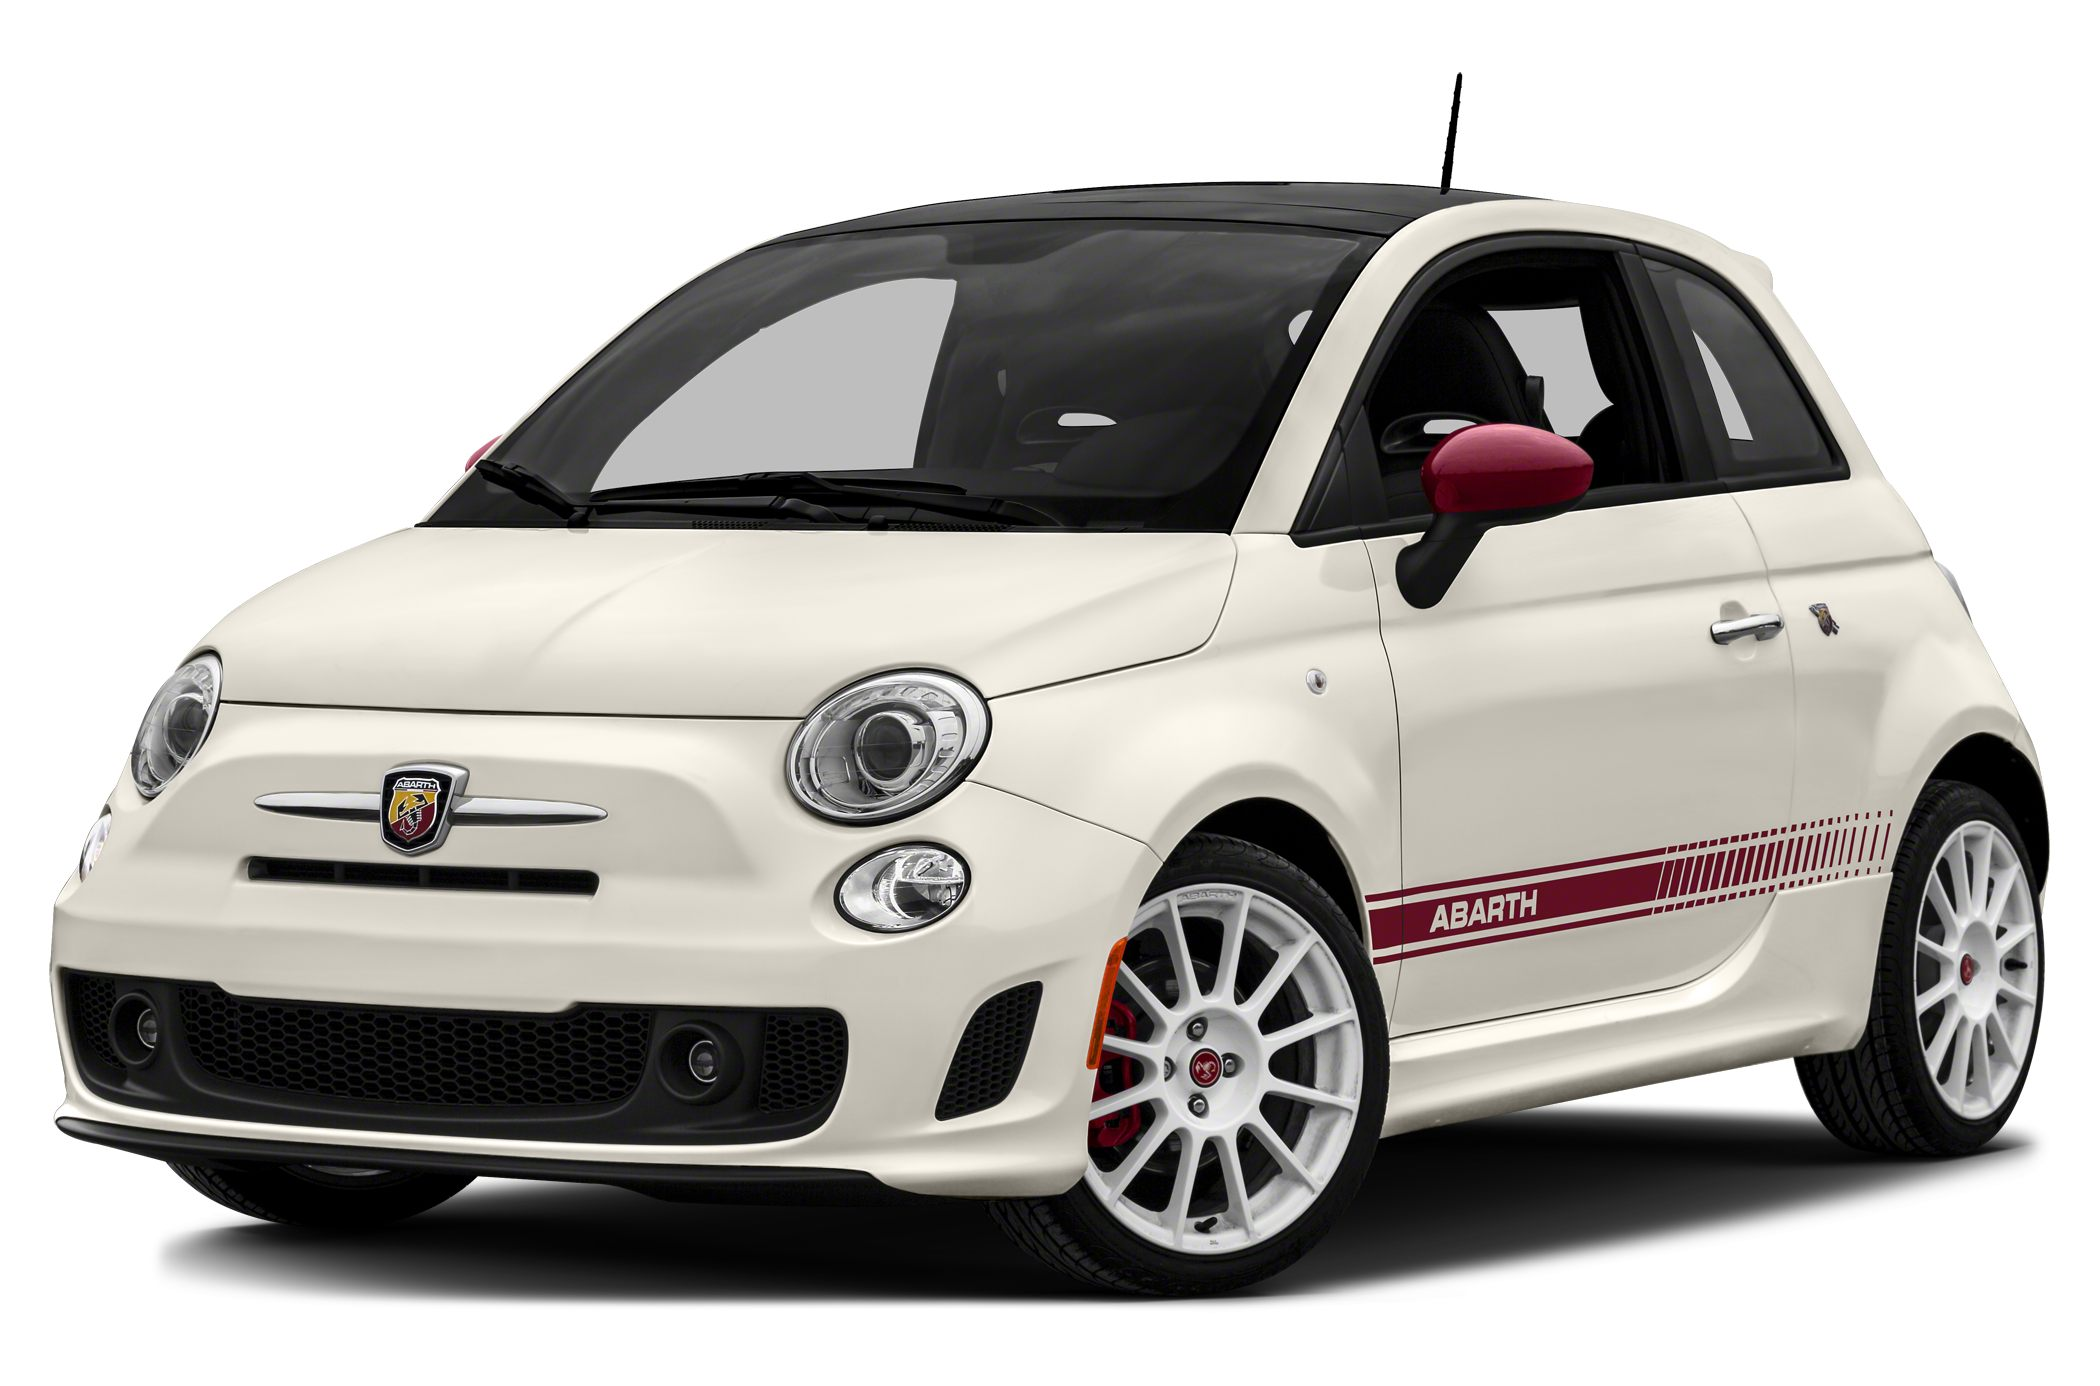 2013 Fiat 500 Abarth Hatchback for sale in Melbourne for $15,854 with 42,439 miles.